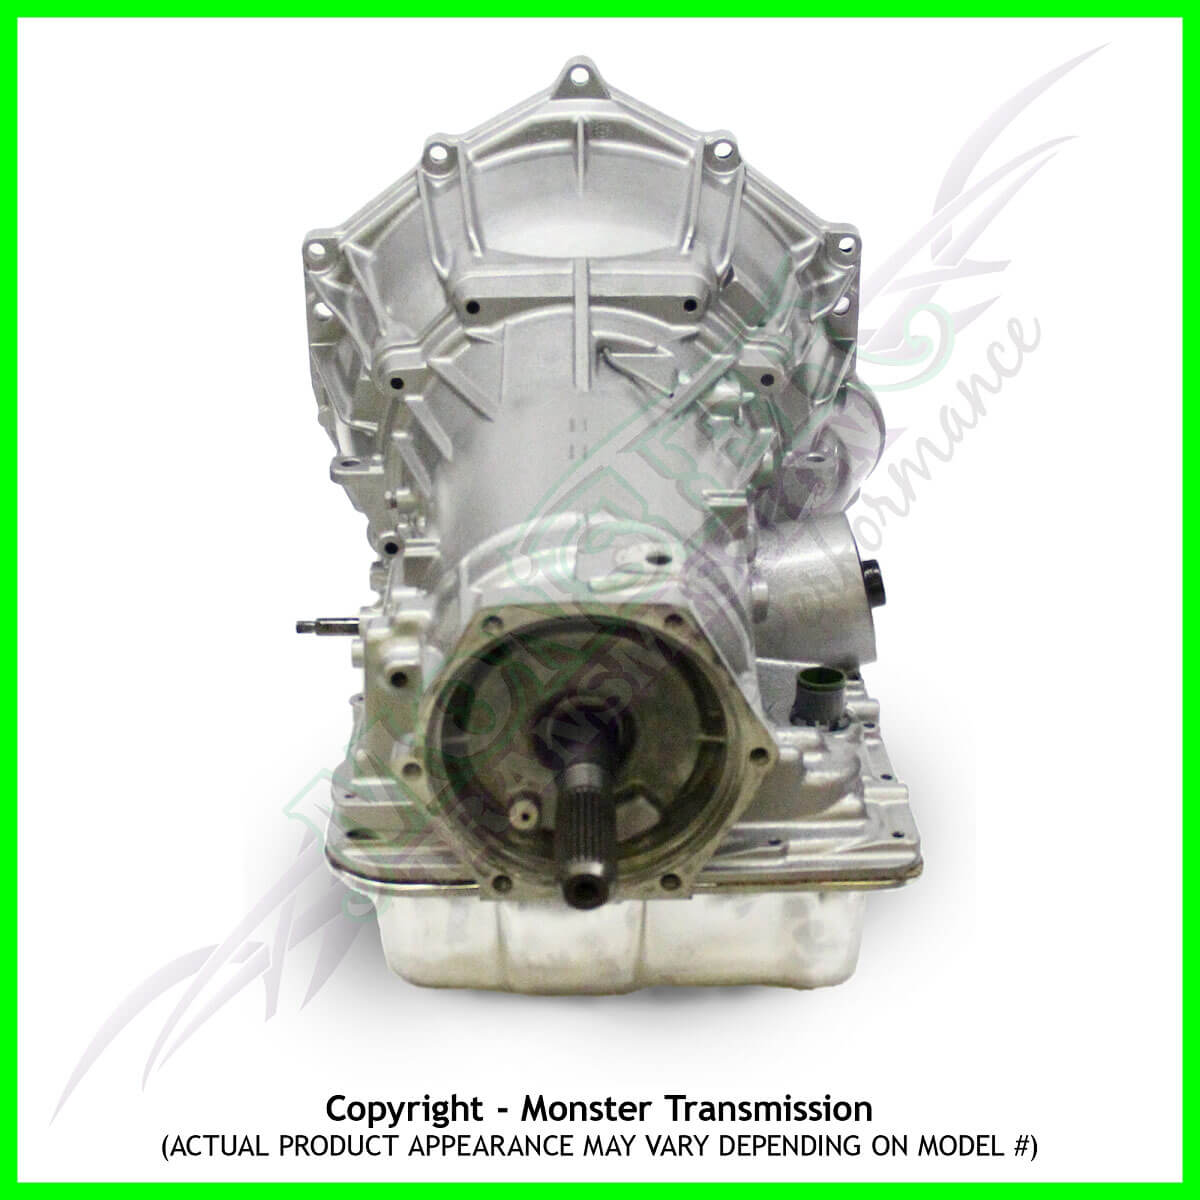 Diagram In Pictures Database Chevy 4x4 Transmission Diagram Just Download Or Read Transmission Diagram Terry Bolryder Putco Tailgate Wiring Onyxum Com